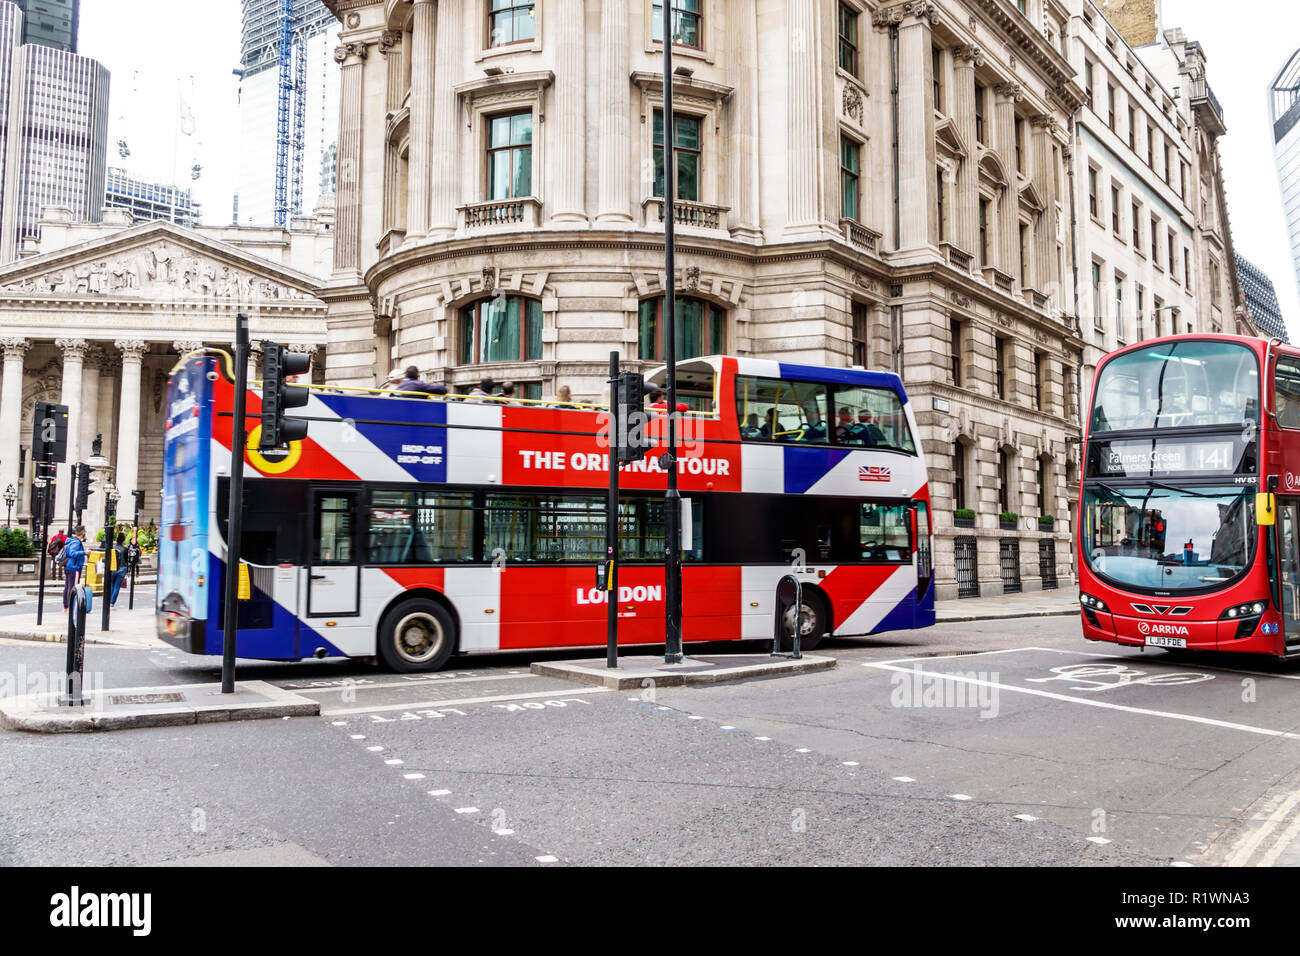 London England Great Britain United Kingdom Lombard Street City of London financial centre center 1 Cornhill historic office building intersection roa - Stock Image